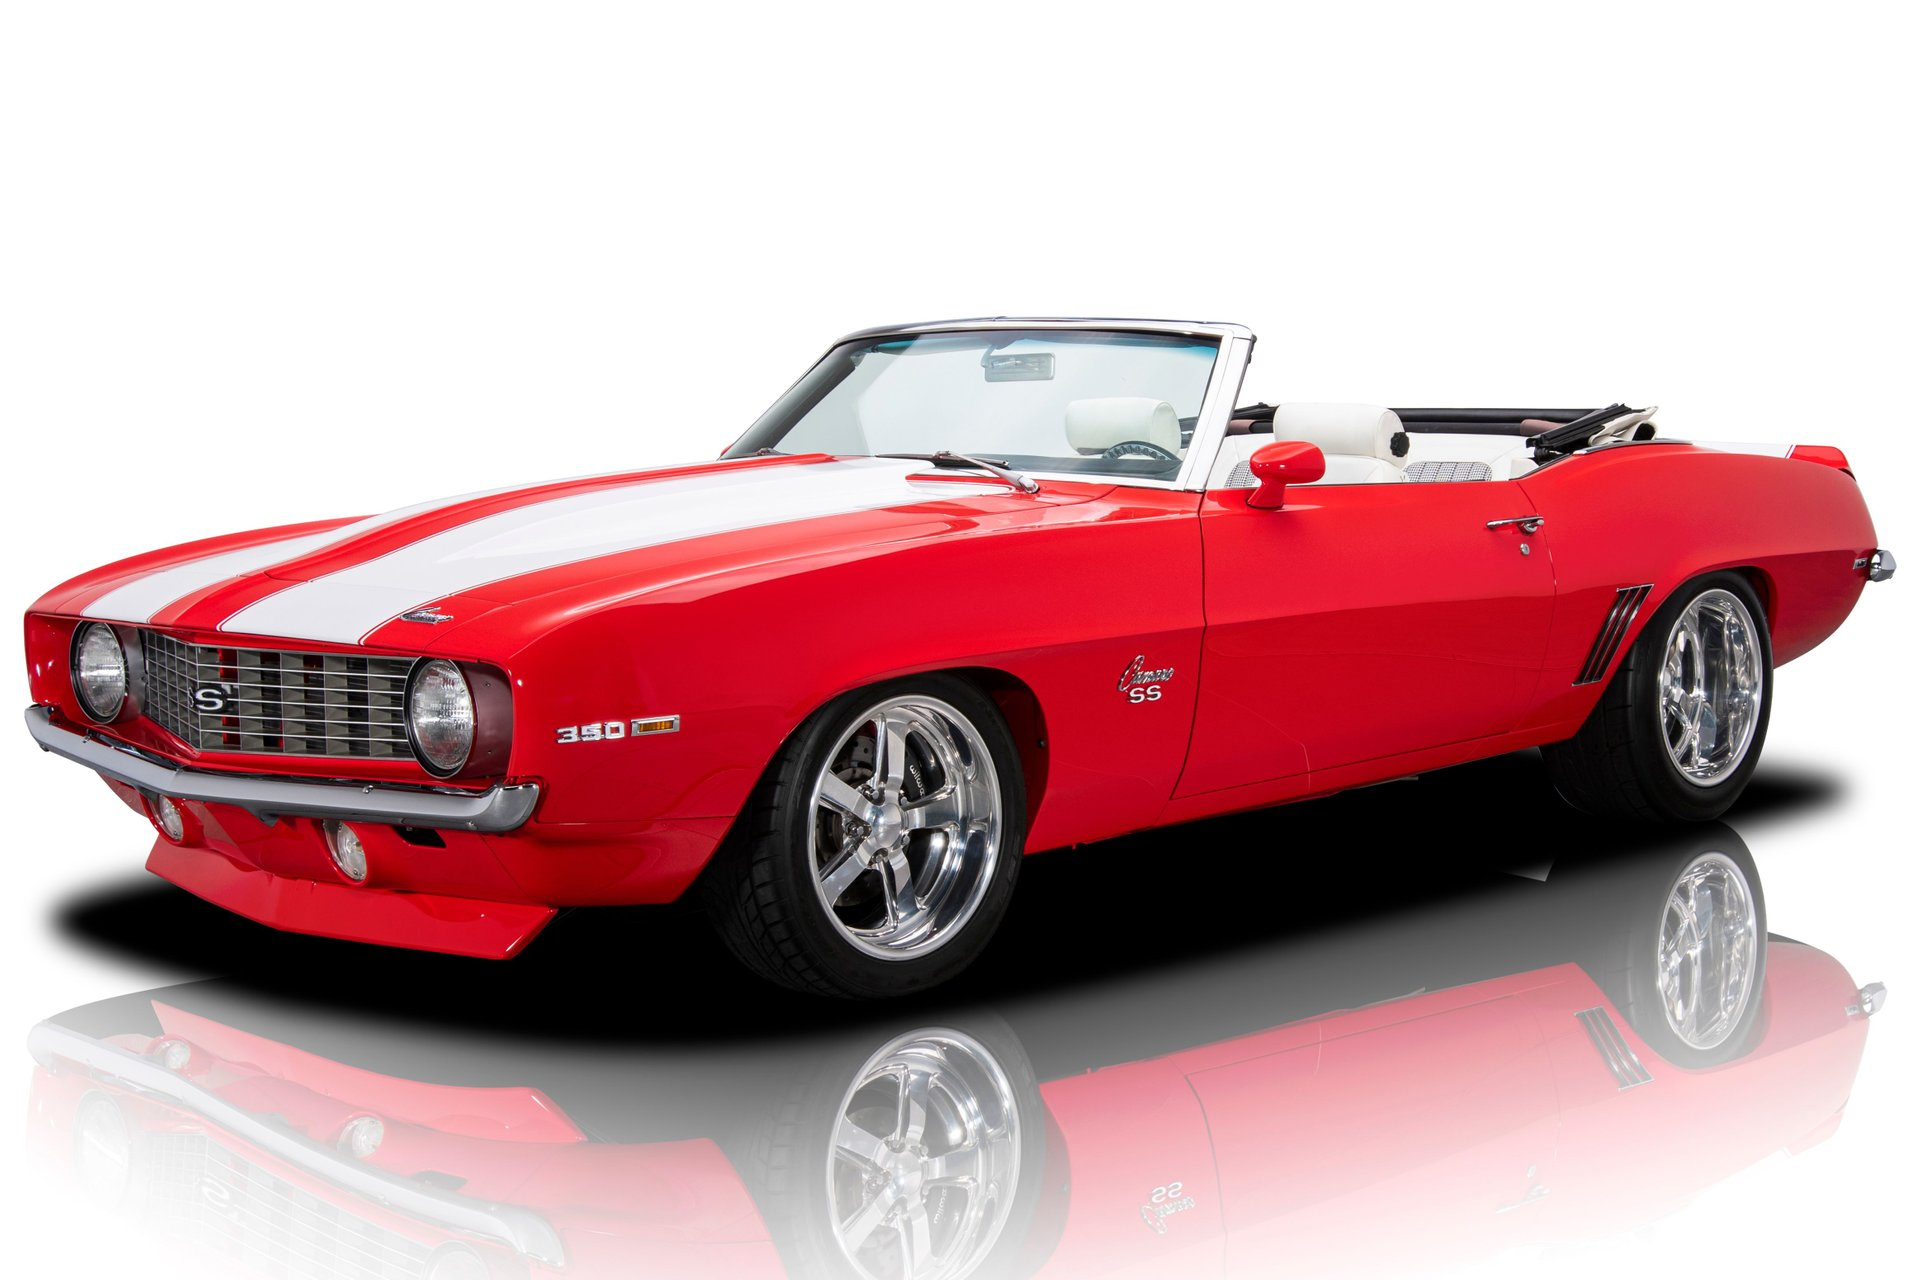 136755 1969 Chevrolet Camaro Rk Motors Classic Cars And Muscle Cars For Sale